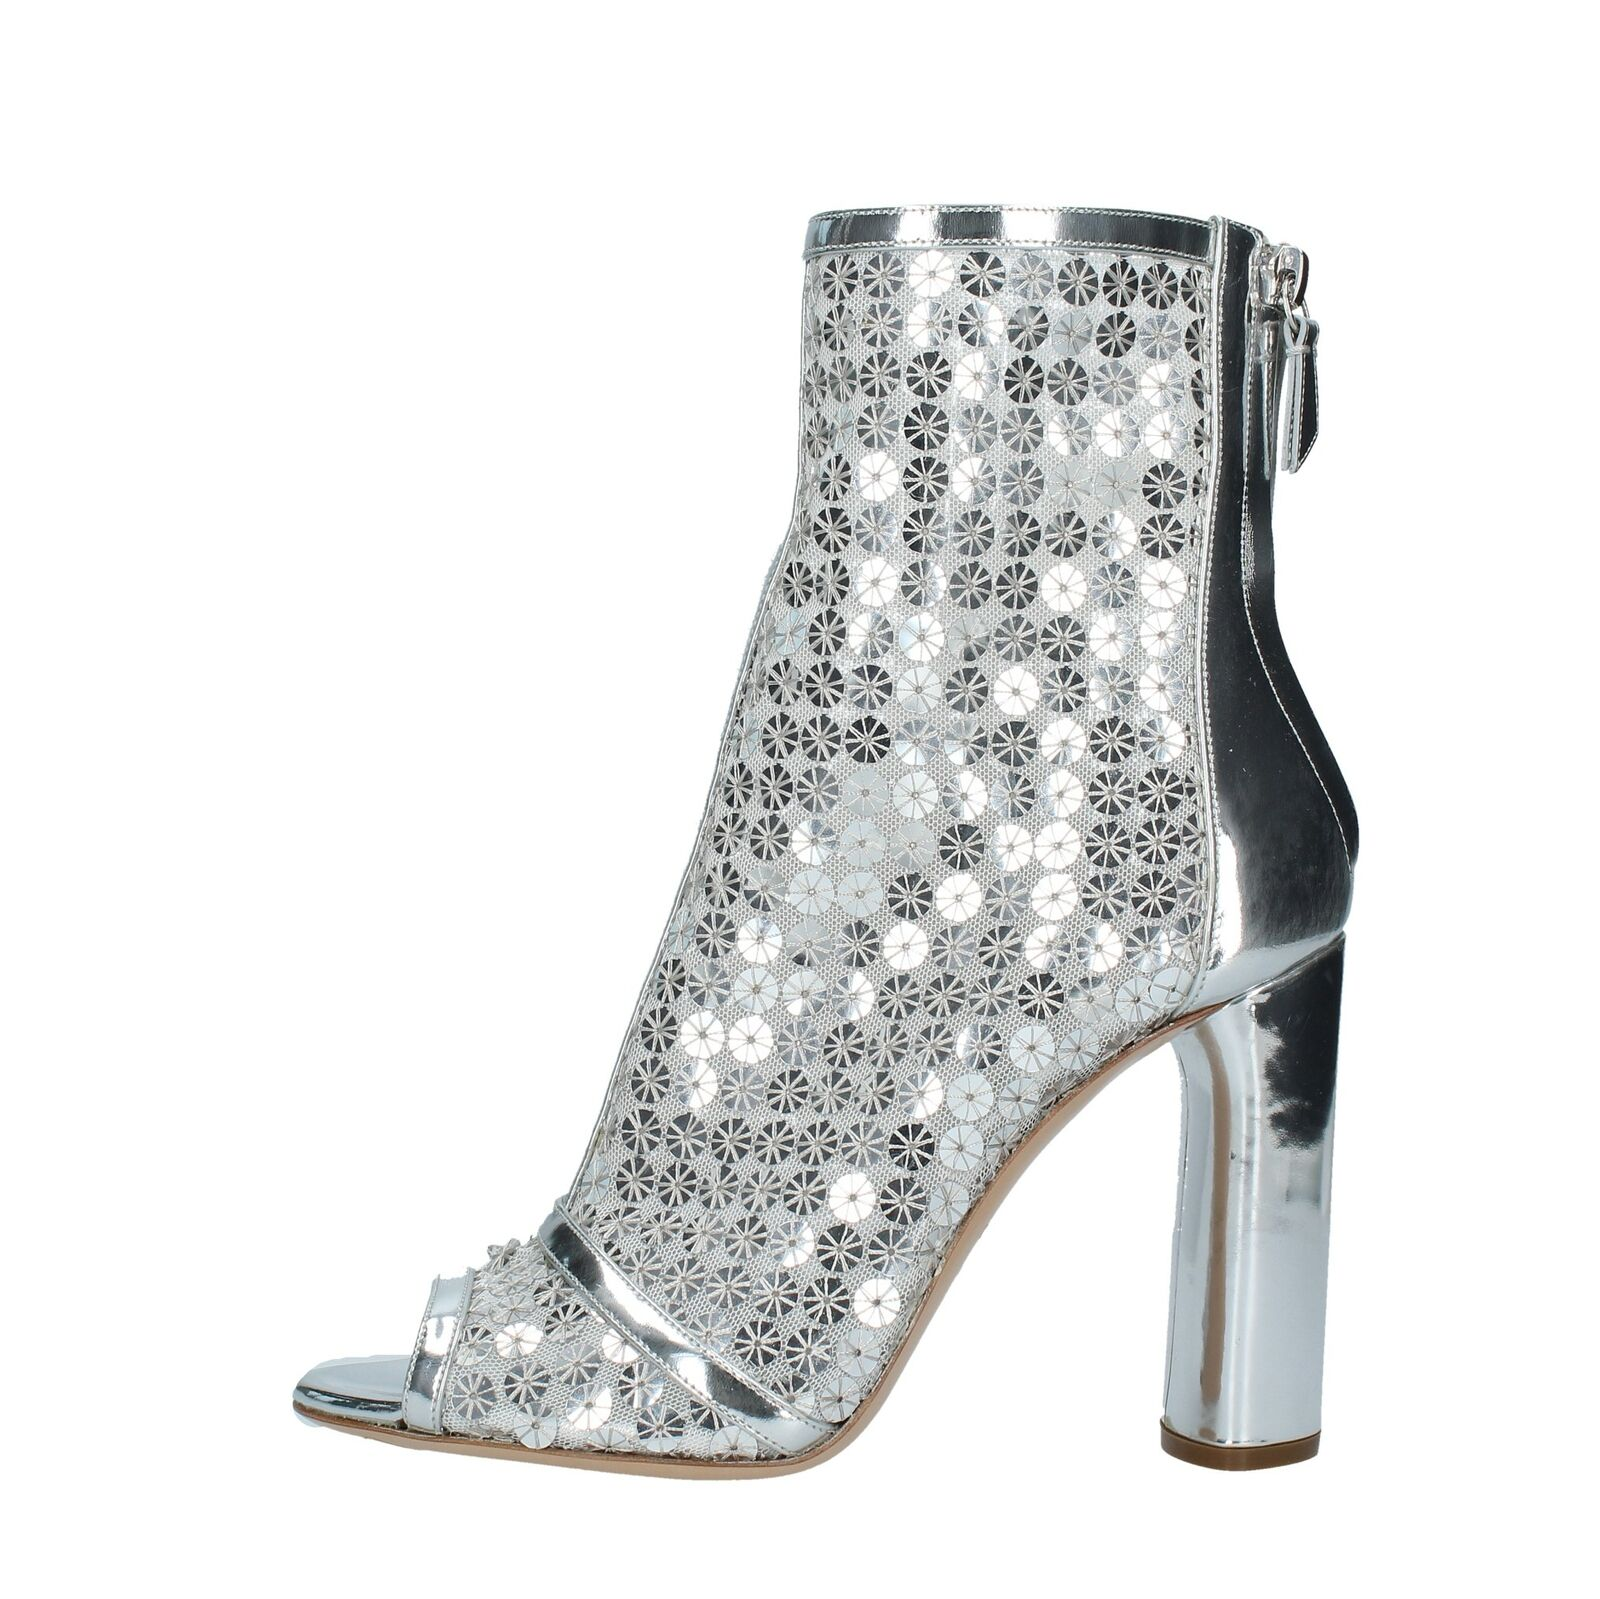 Nv25 Womens Ankle topped CASADEI Woman Silver